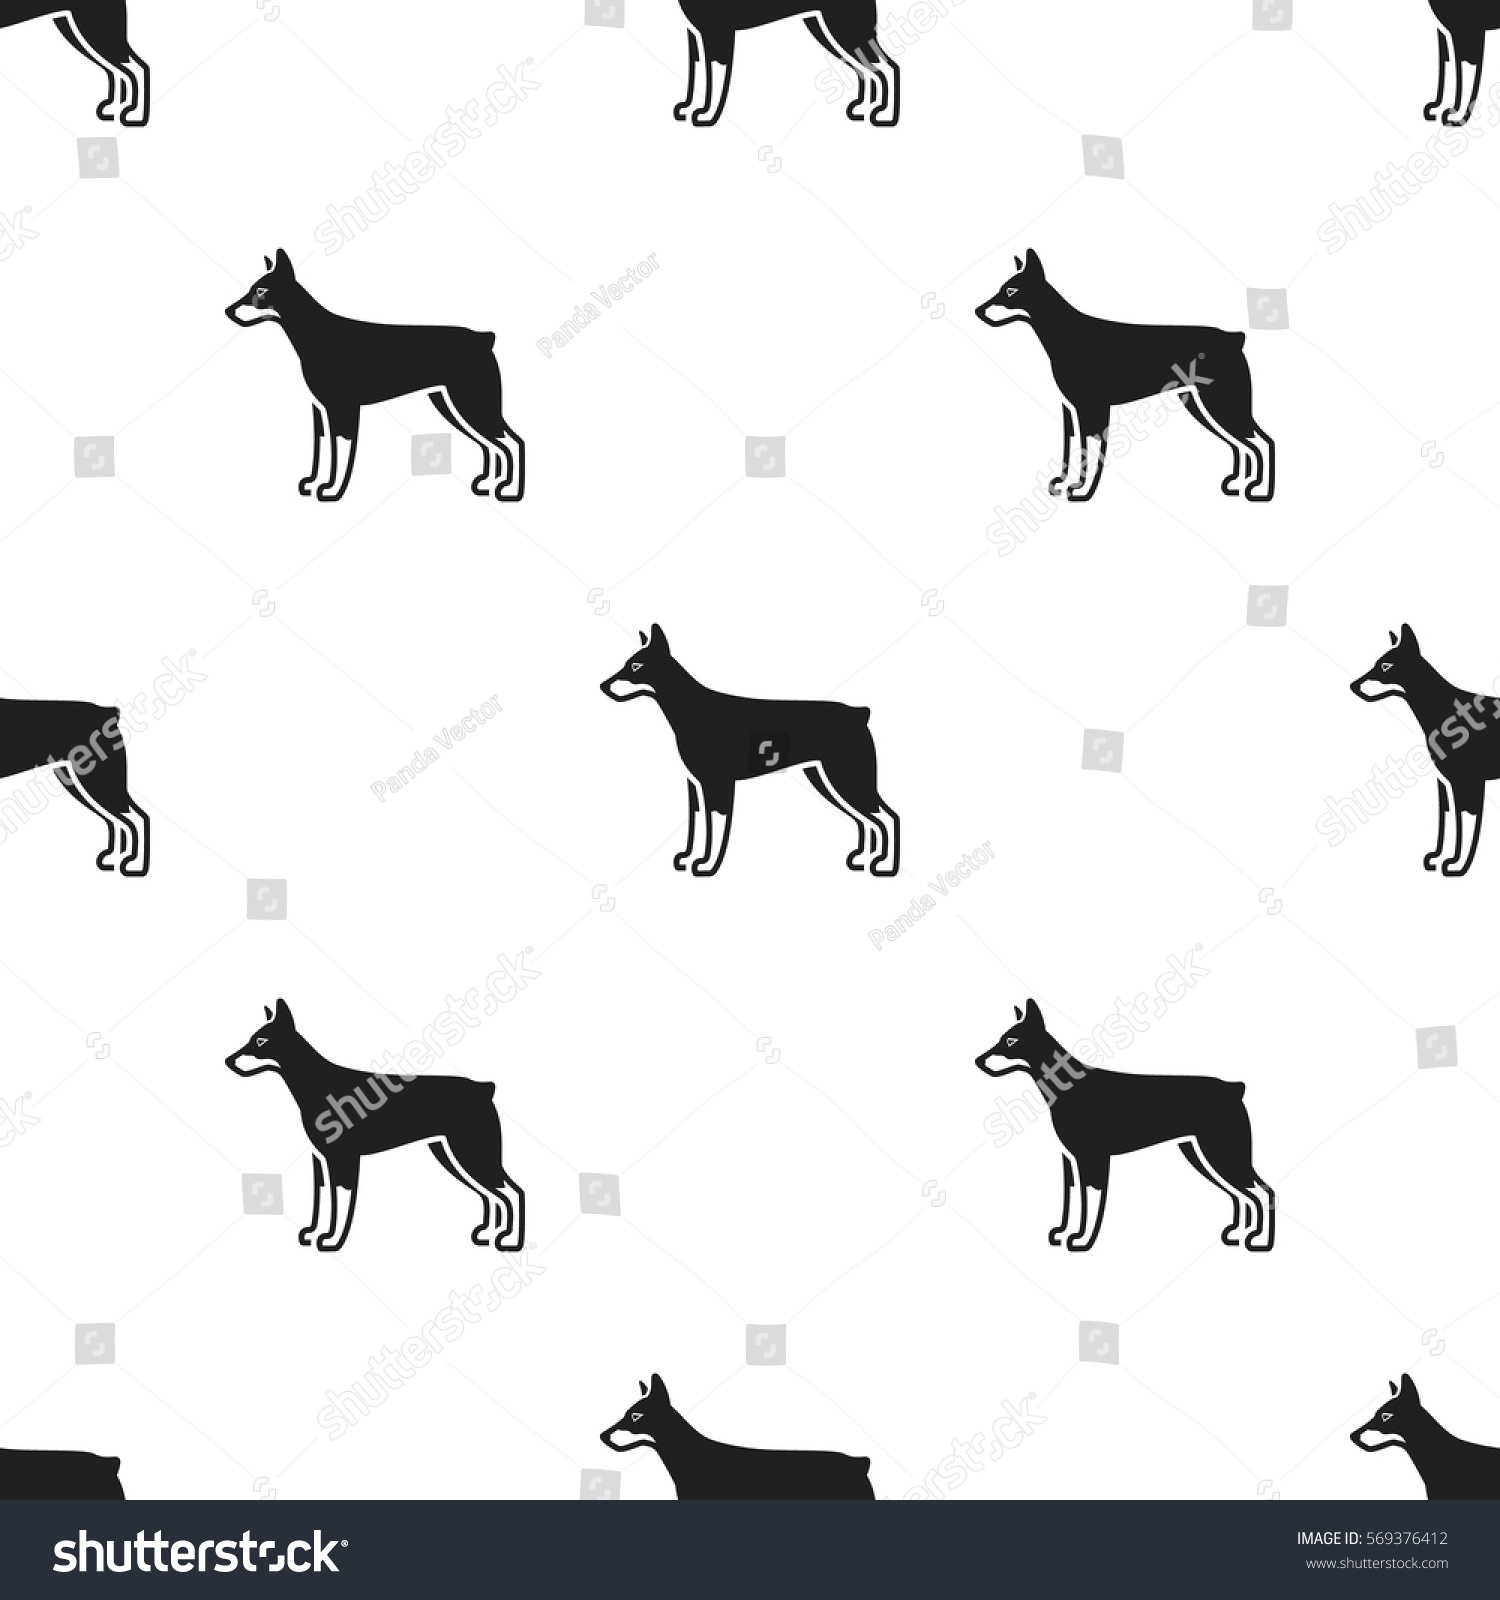 doberman vector icon in black style for web